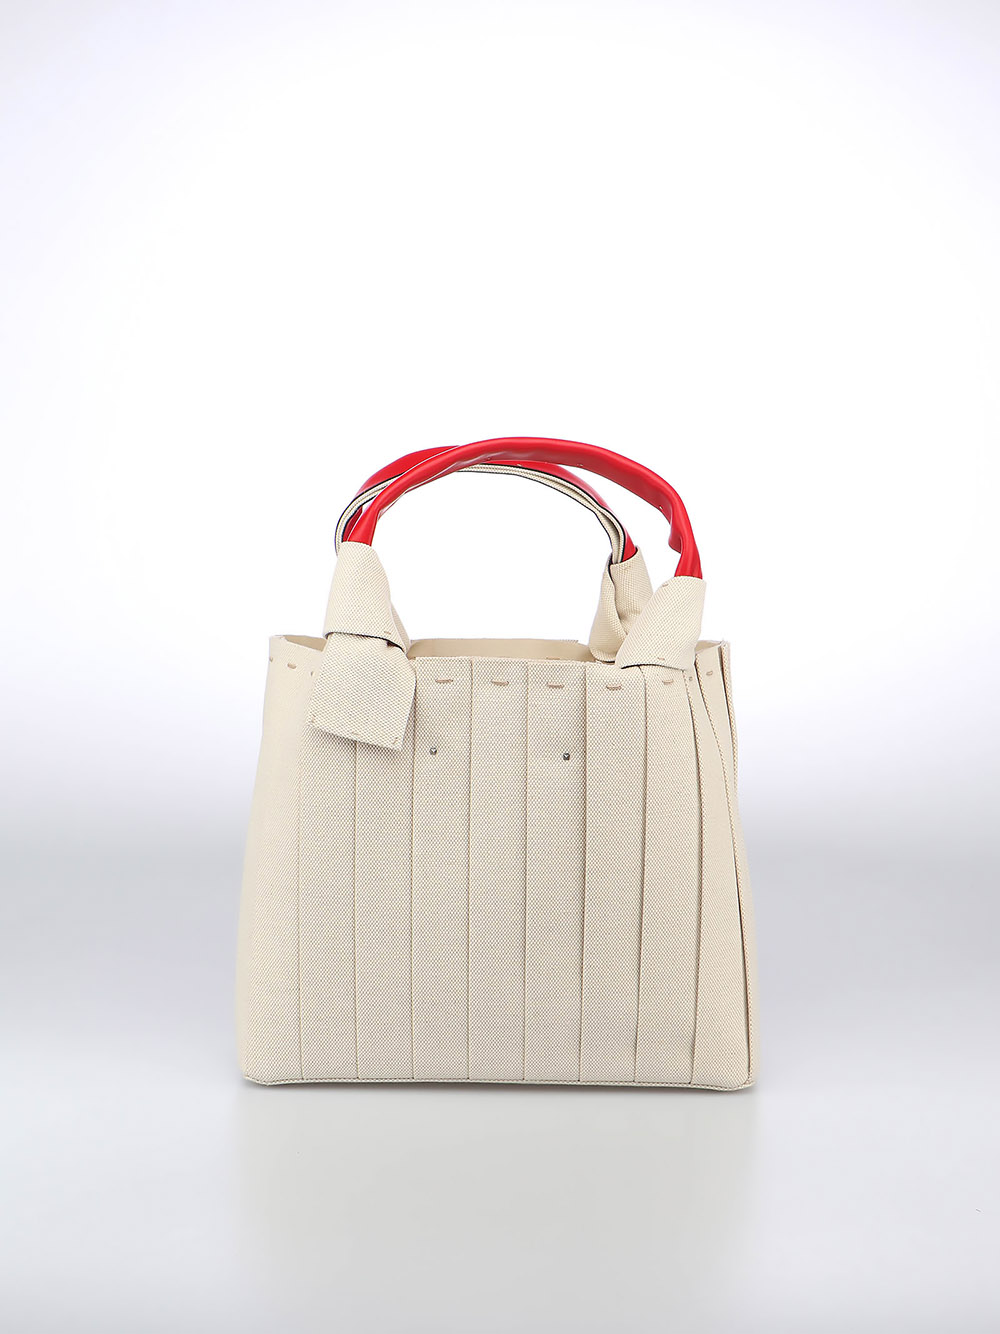 Picture of Valentino Garavani | Atelier Bag Vg 05 Plissé Small Tote